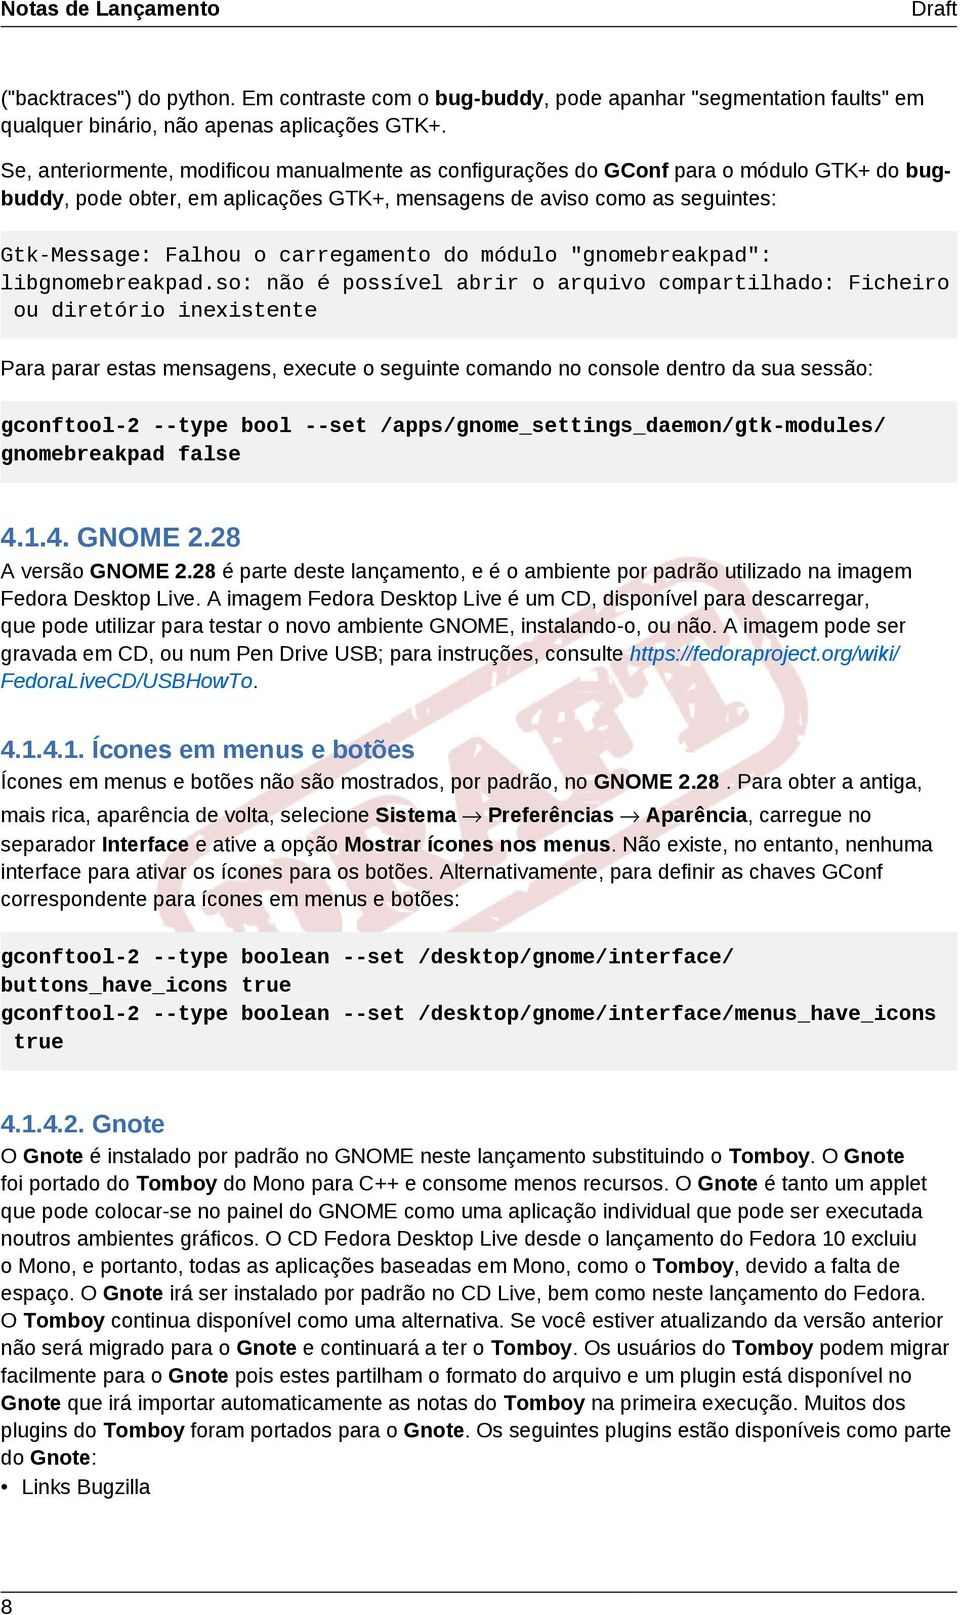 "carregamento do módulo ""gnomebreakpad"": libgnomebreakpad."